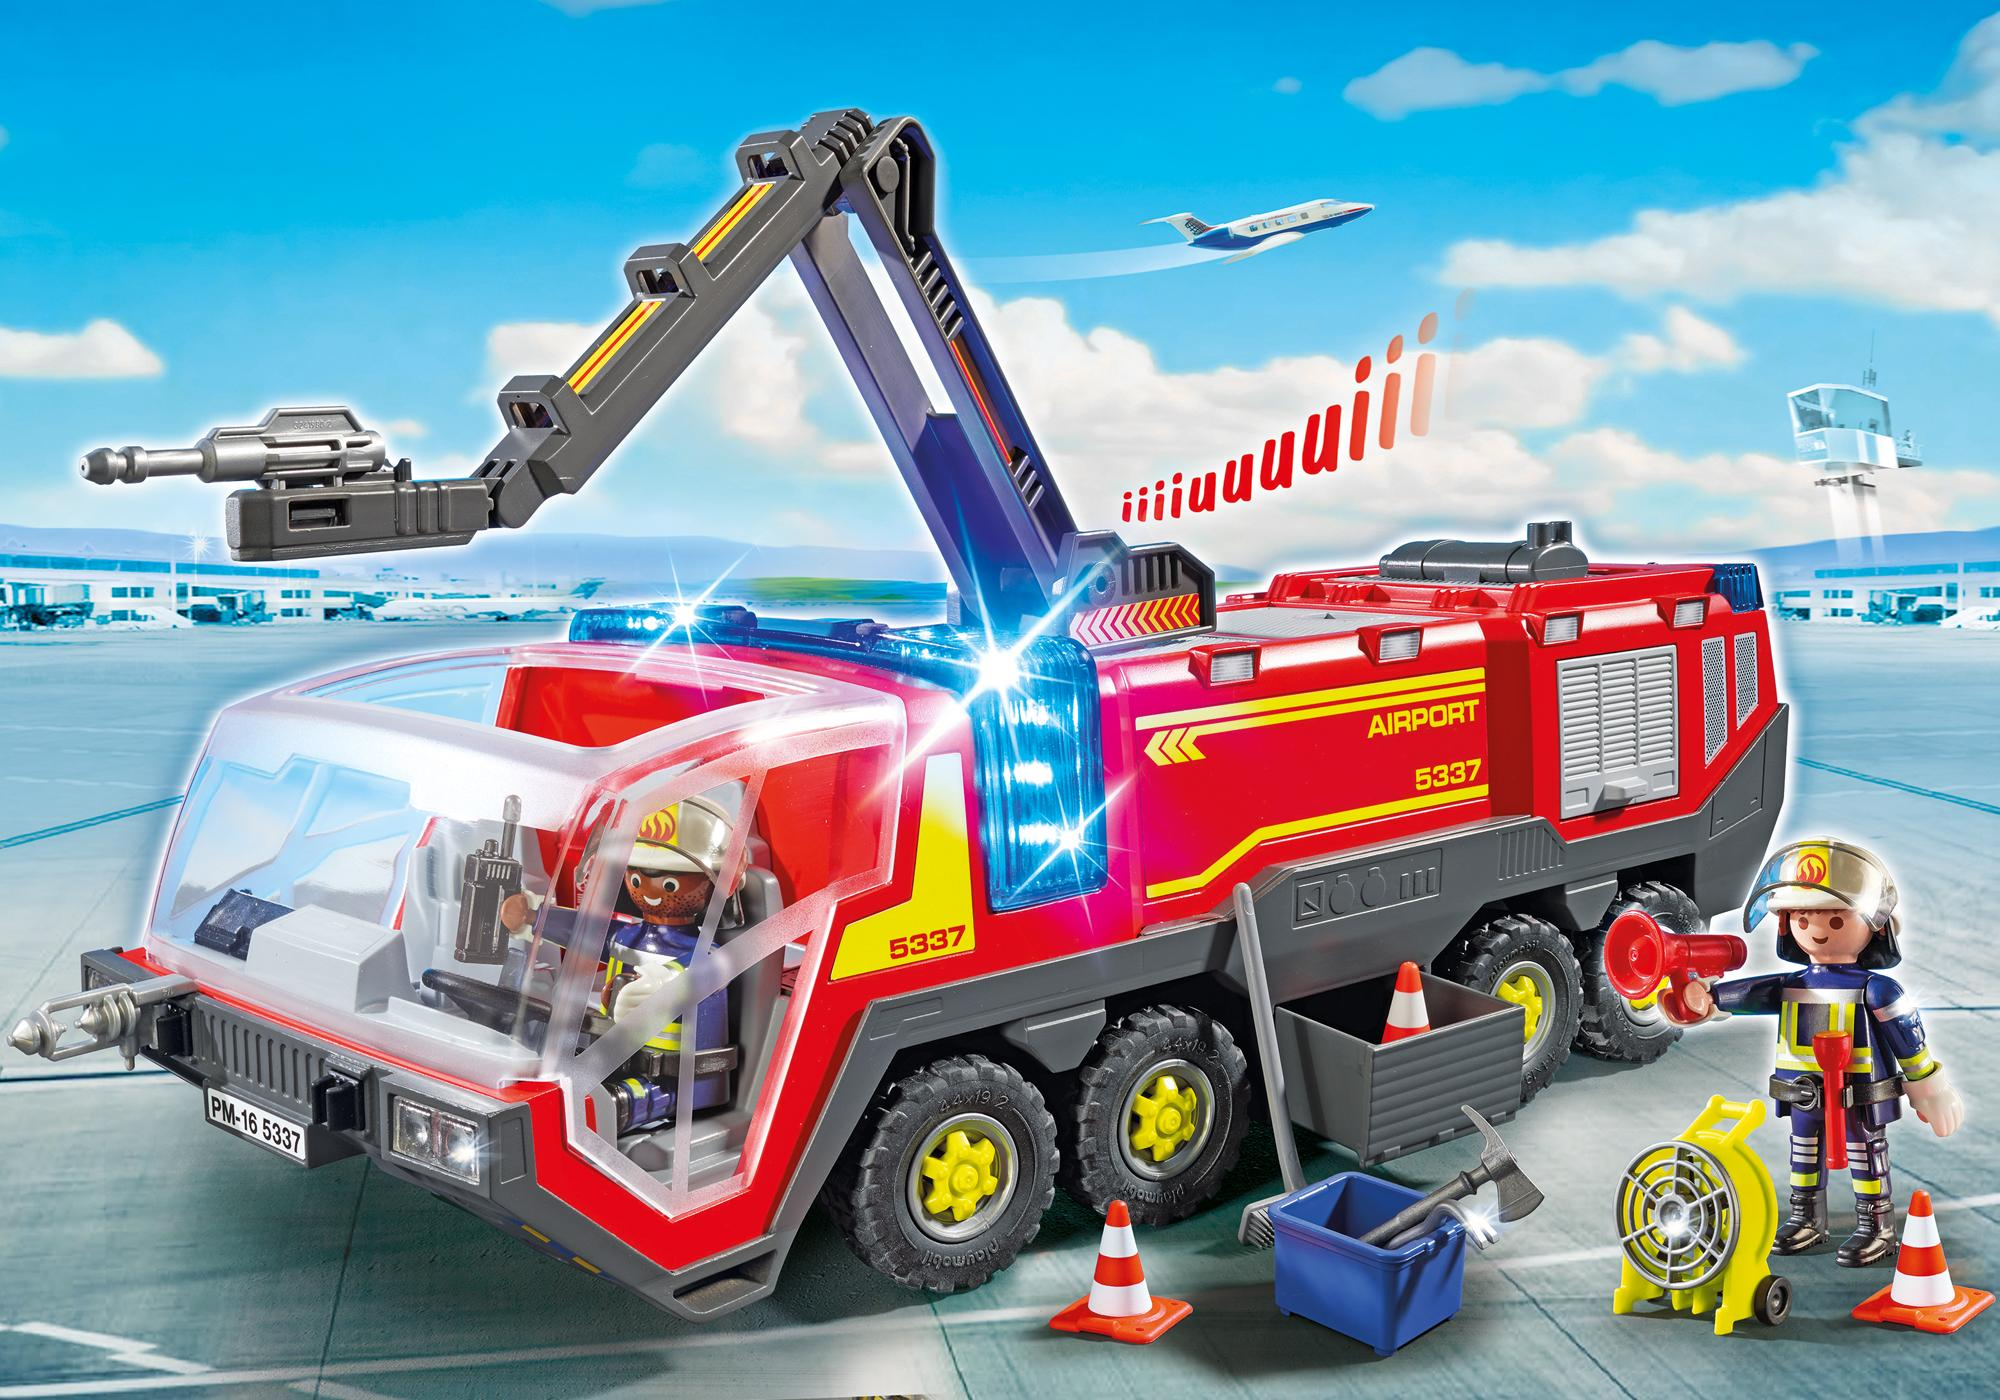 http://media.playmobil.com/i/playmobil/5337_product_detail